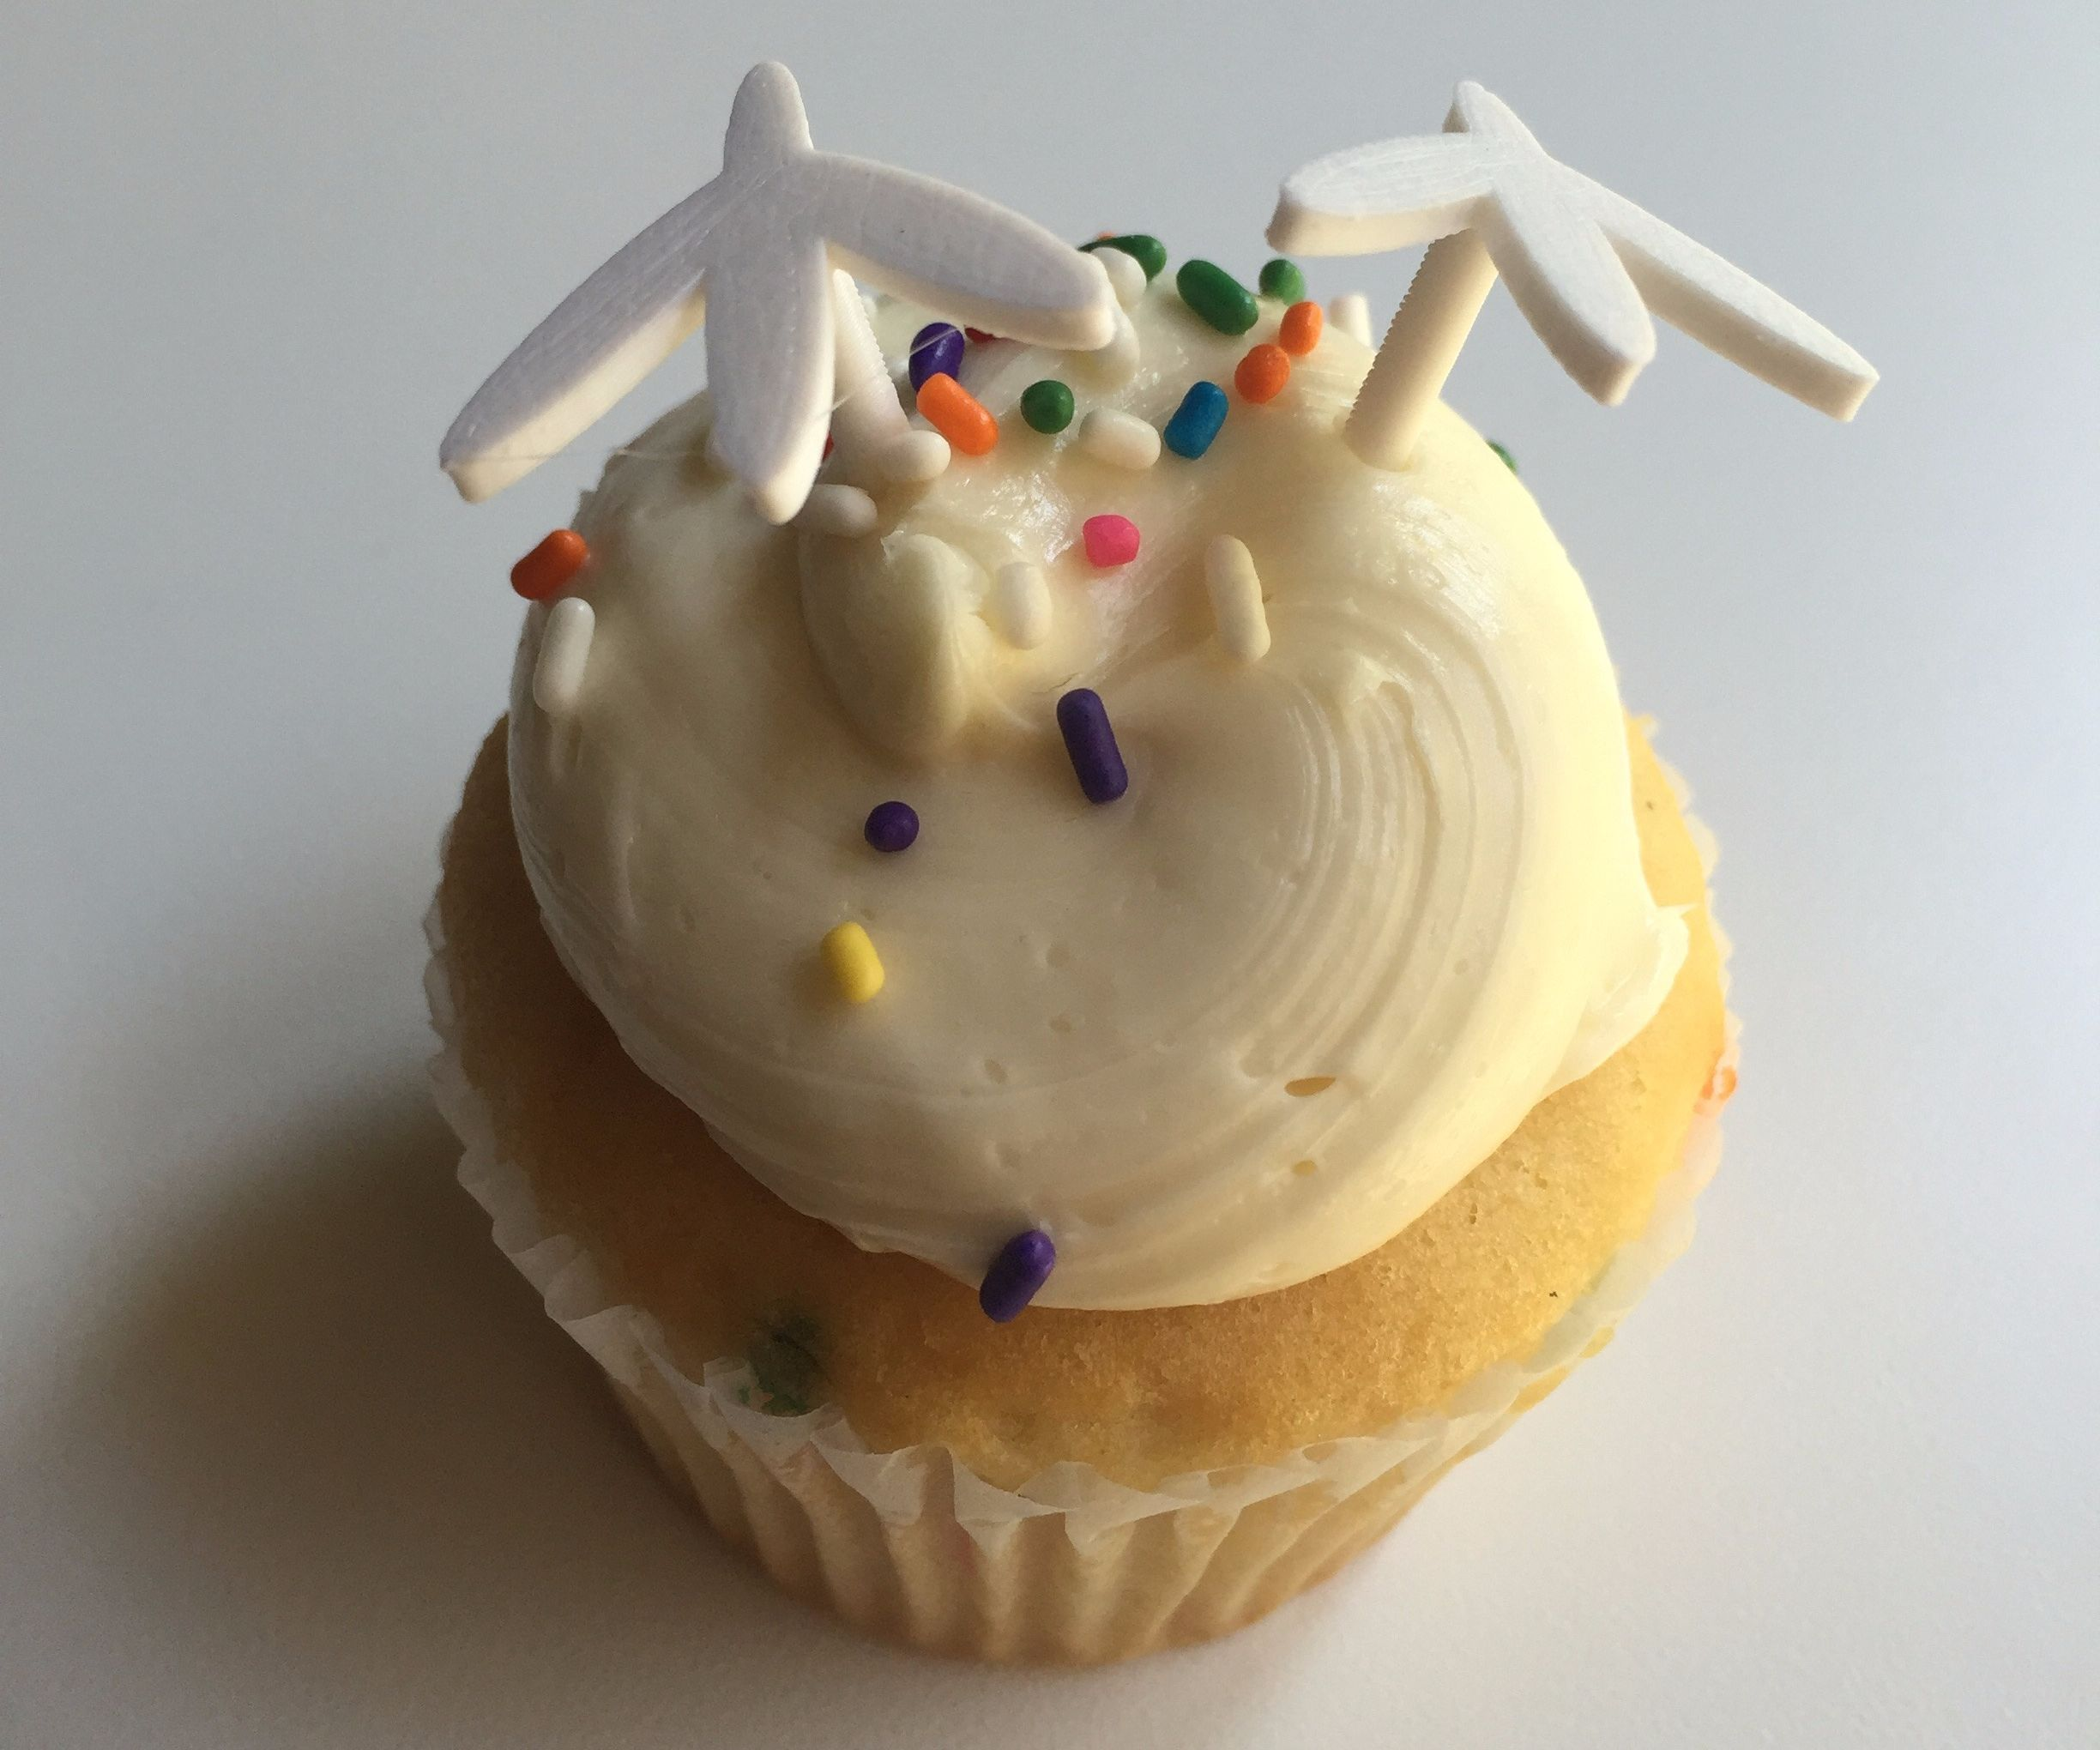 Design and 3D Print a Cupcake Topper